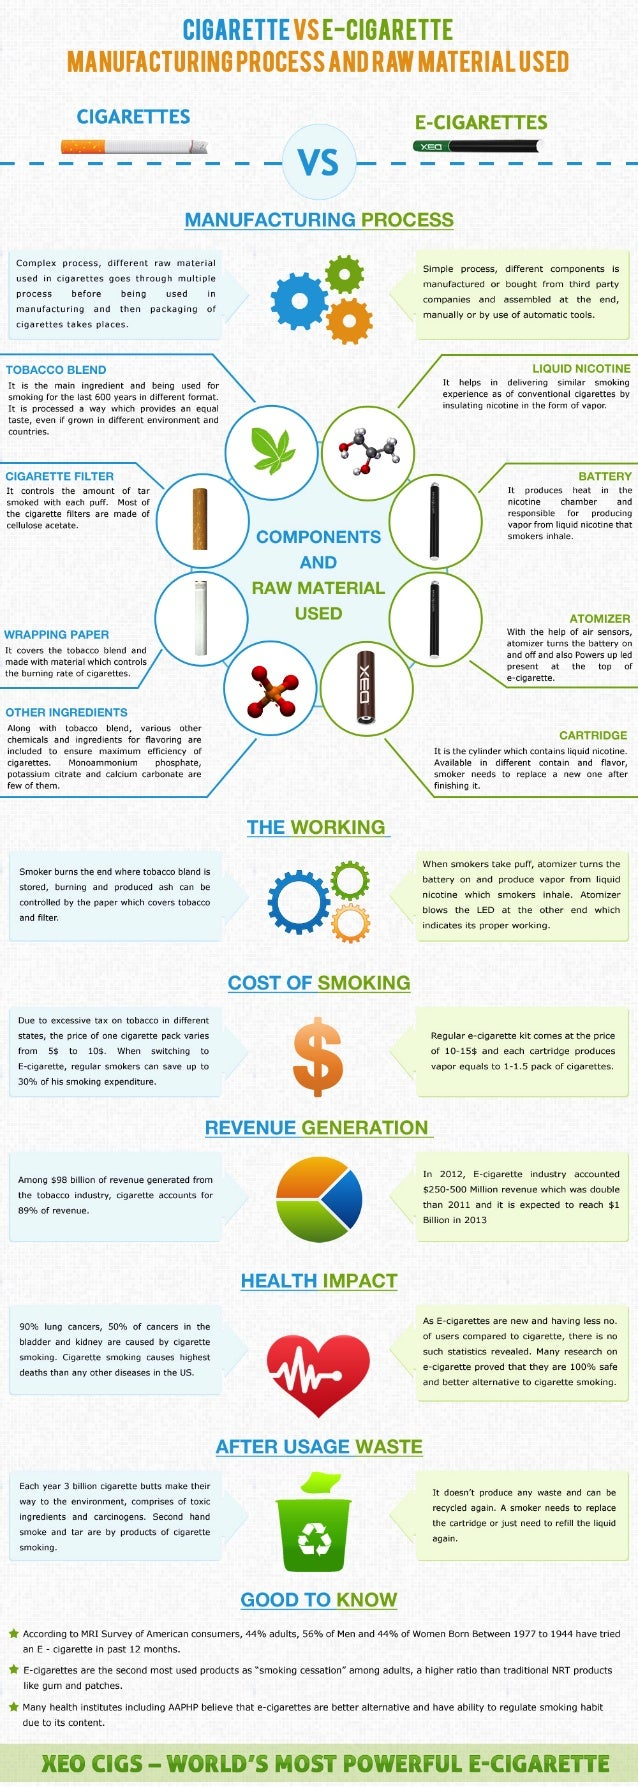 Manufacturing Cigarettes and E-cigarettes- What's the Difference?